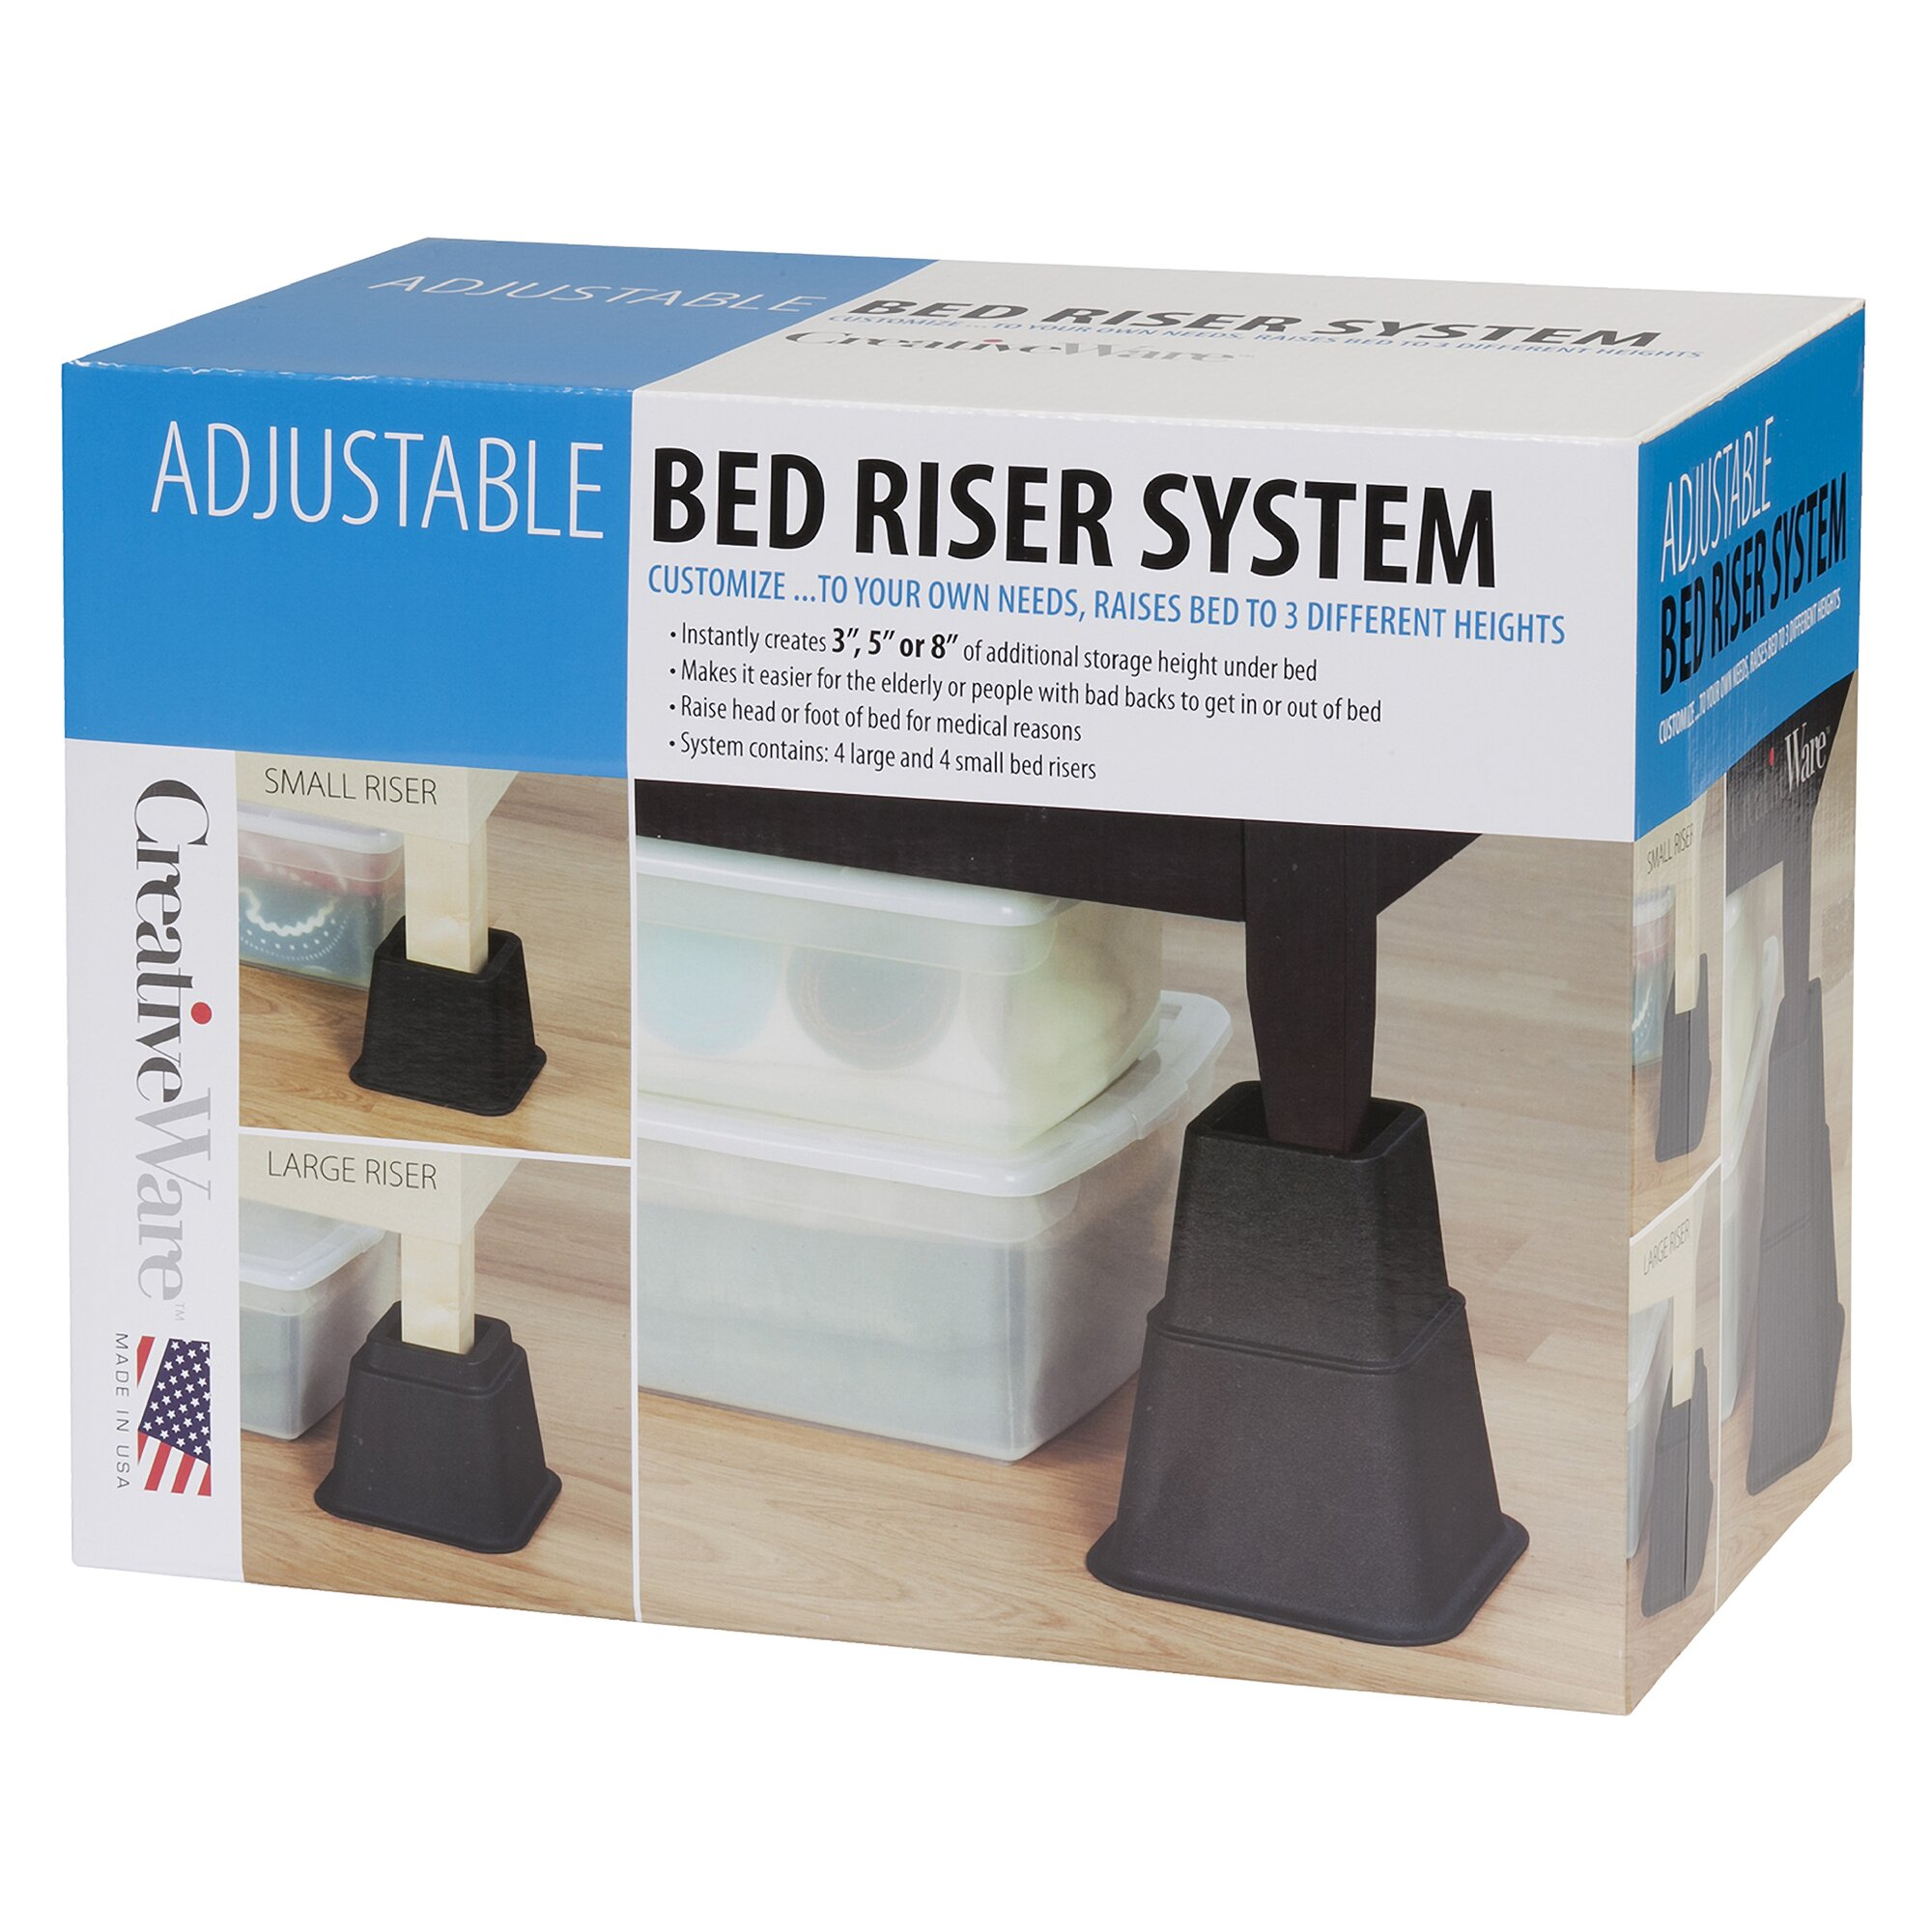 Extra tall bed risers - Home 8 Piece Bed Riser Set